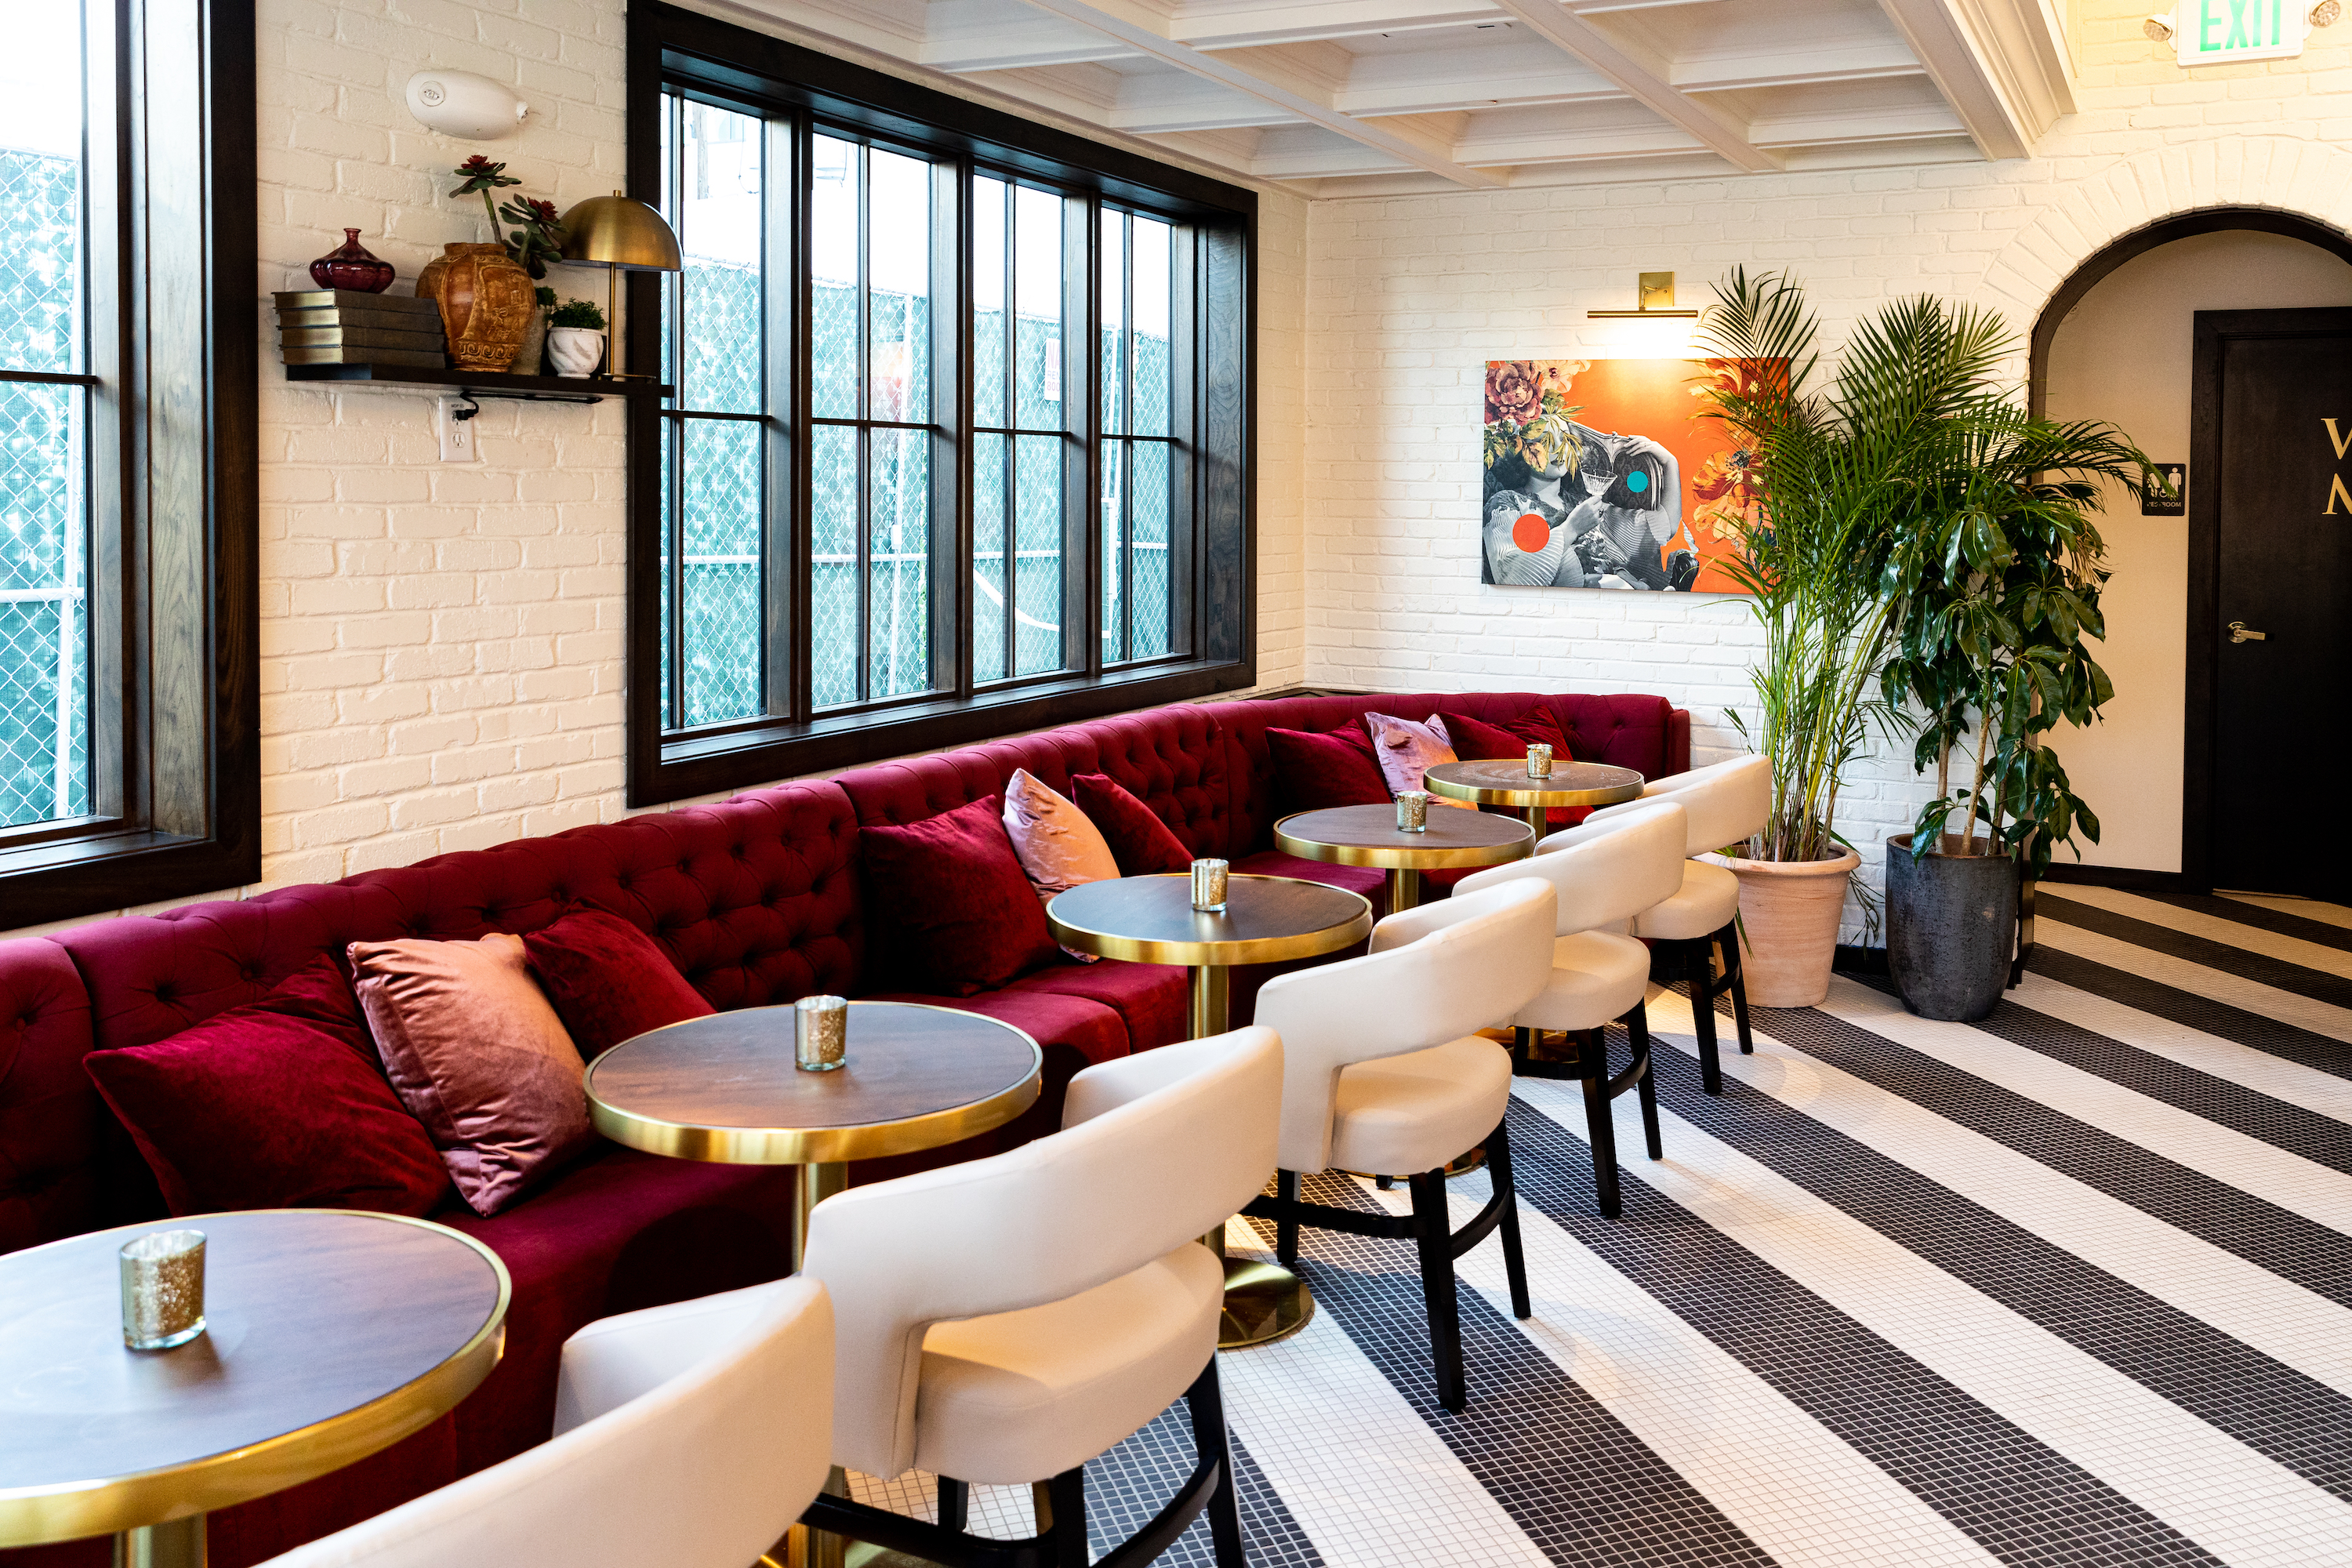 Bar interior with red banquettes, potted plants, and tile floors